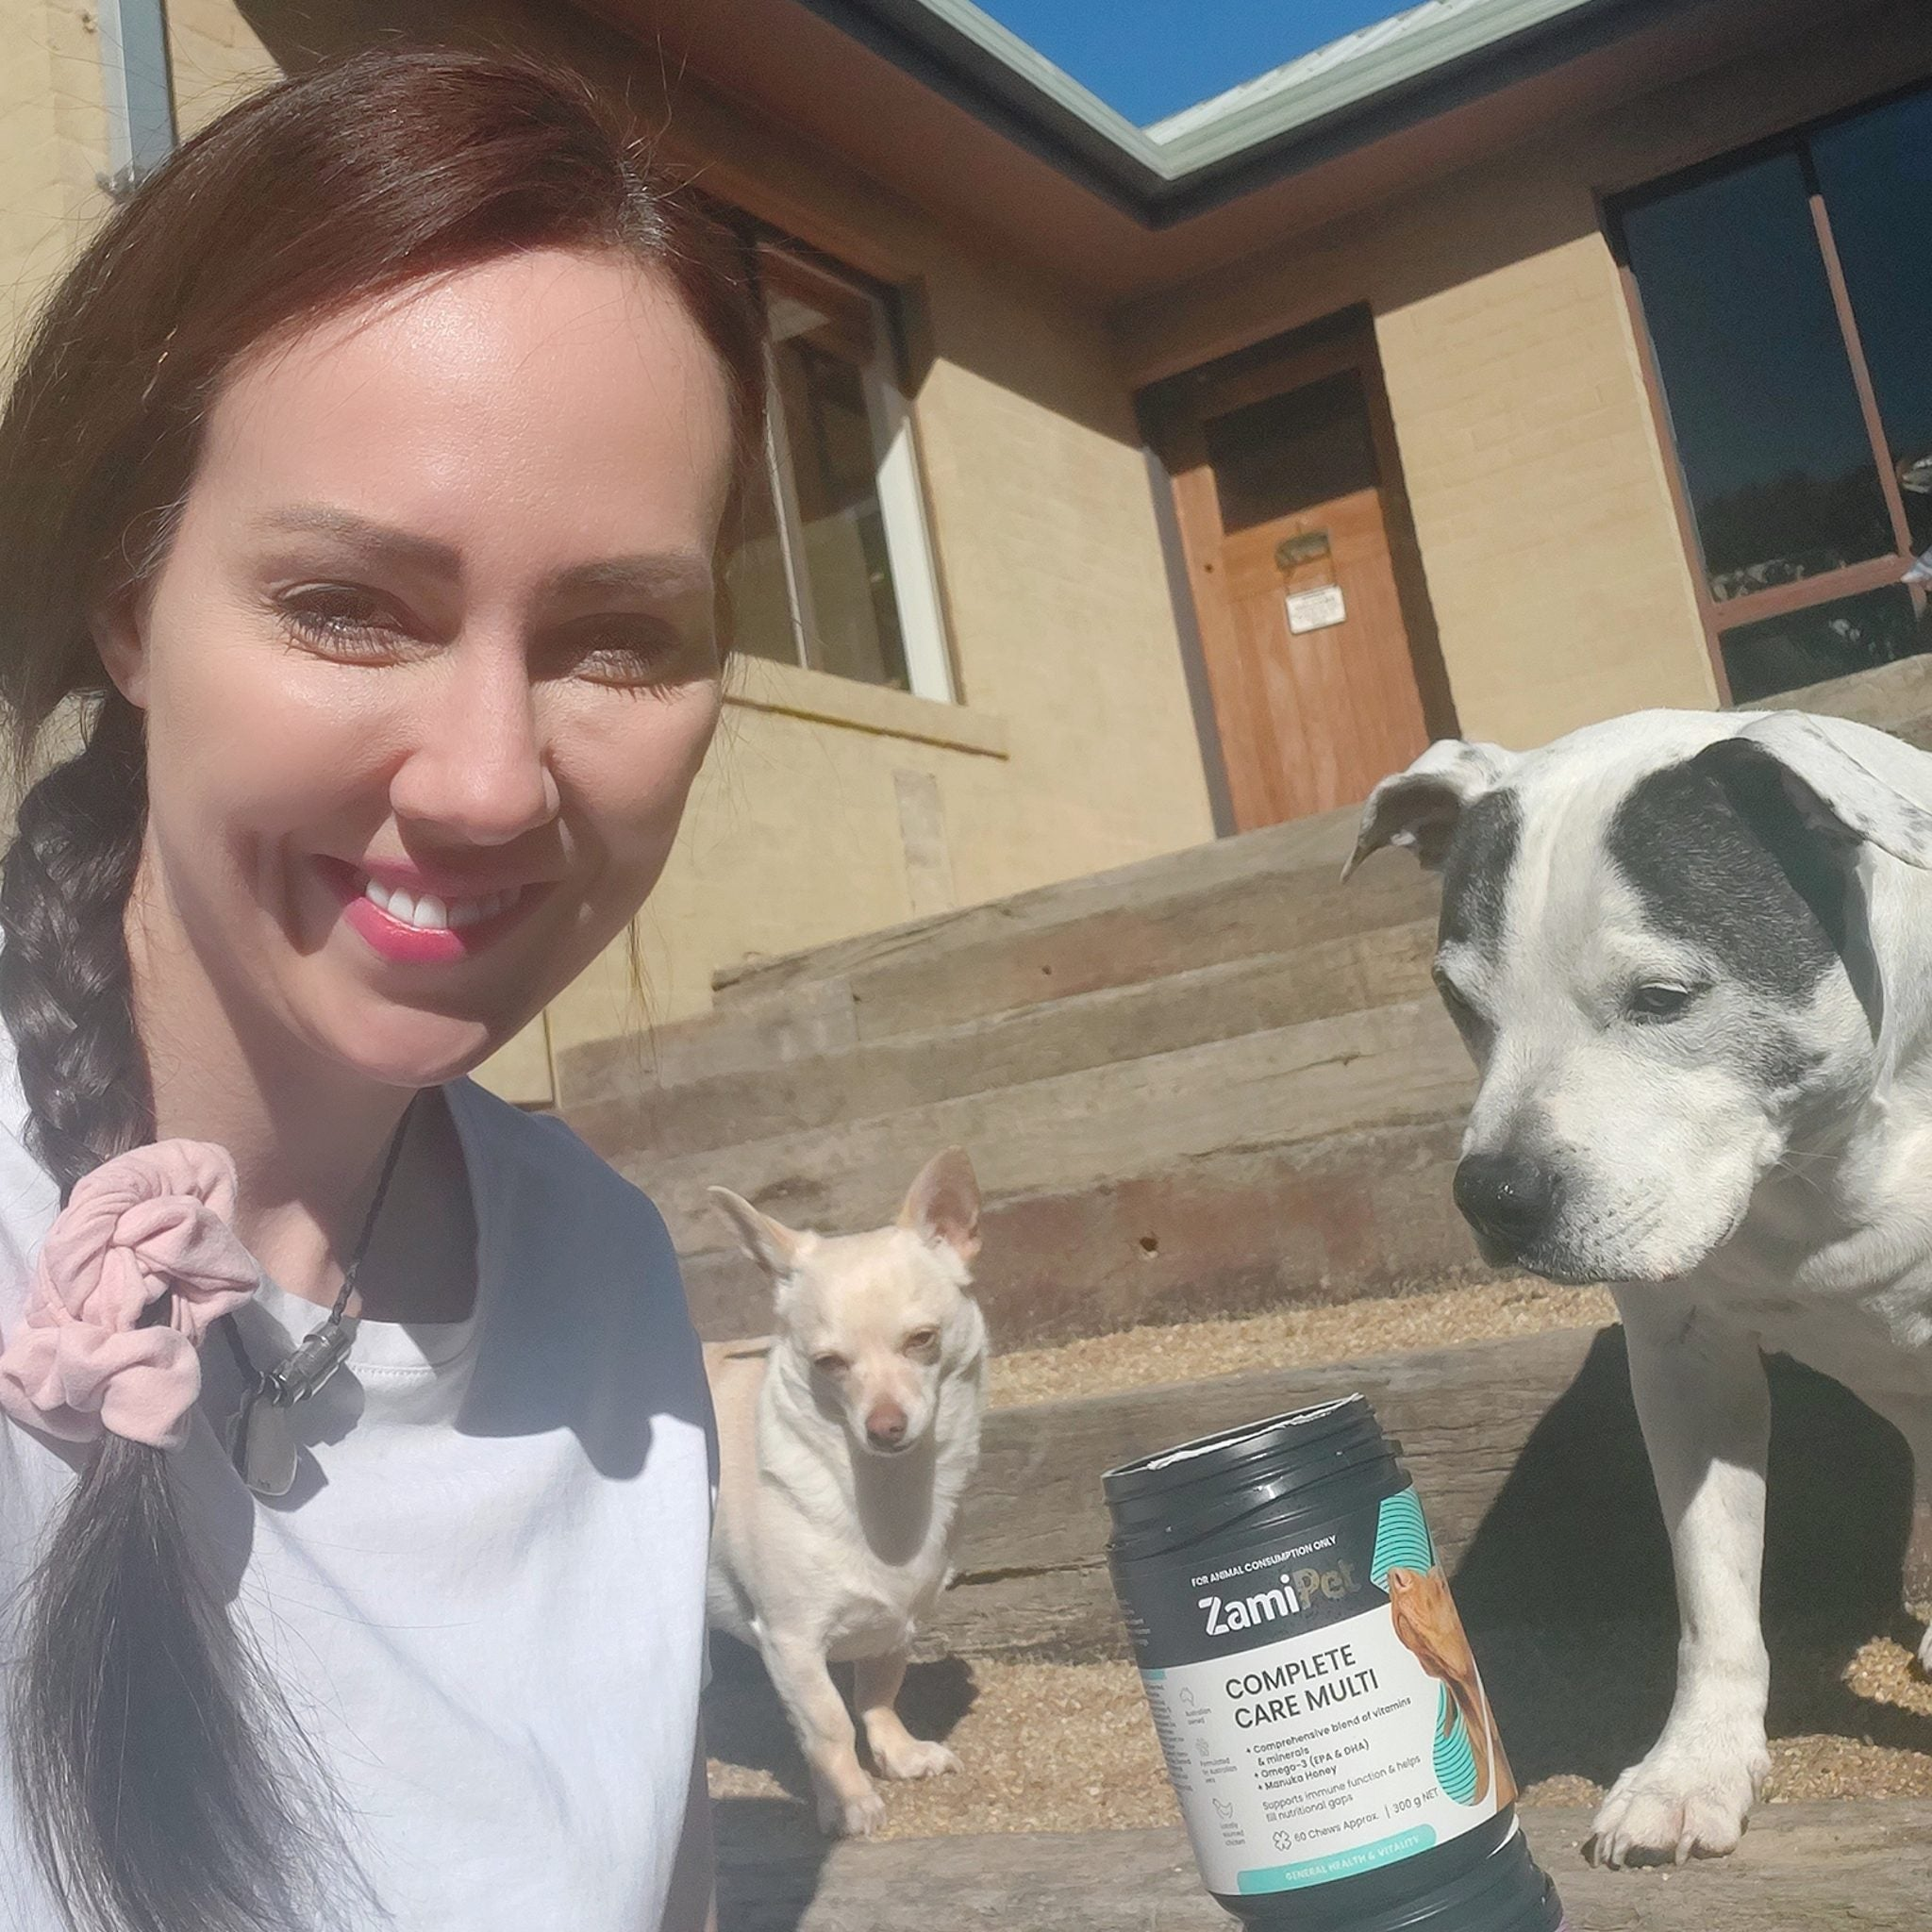 Laura V Animal Behaviourist with pet dogs and ZamiPet Complete Care Multi dog supplement